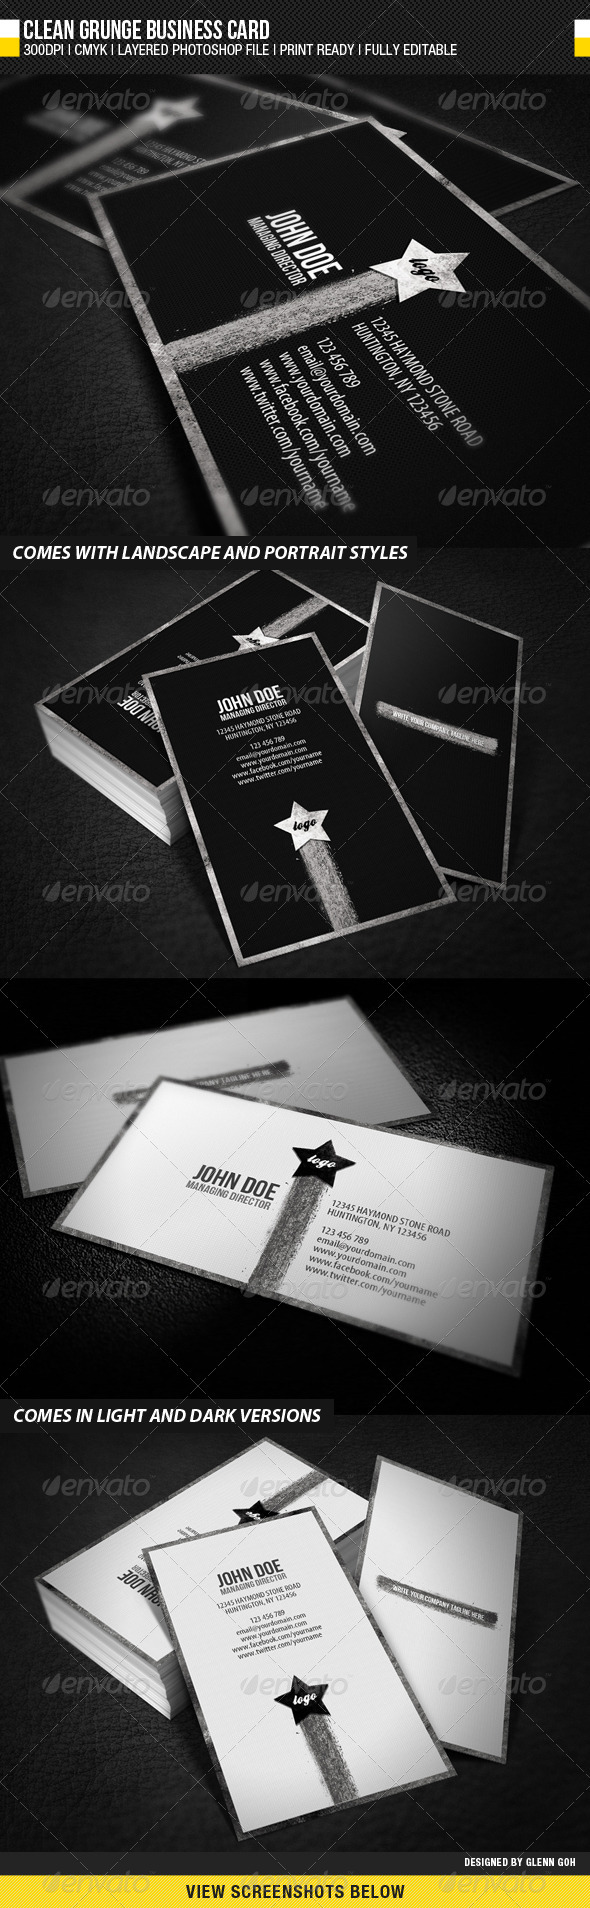 Clean Grunge Business Card - Grunge Business Cards